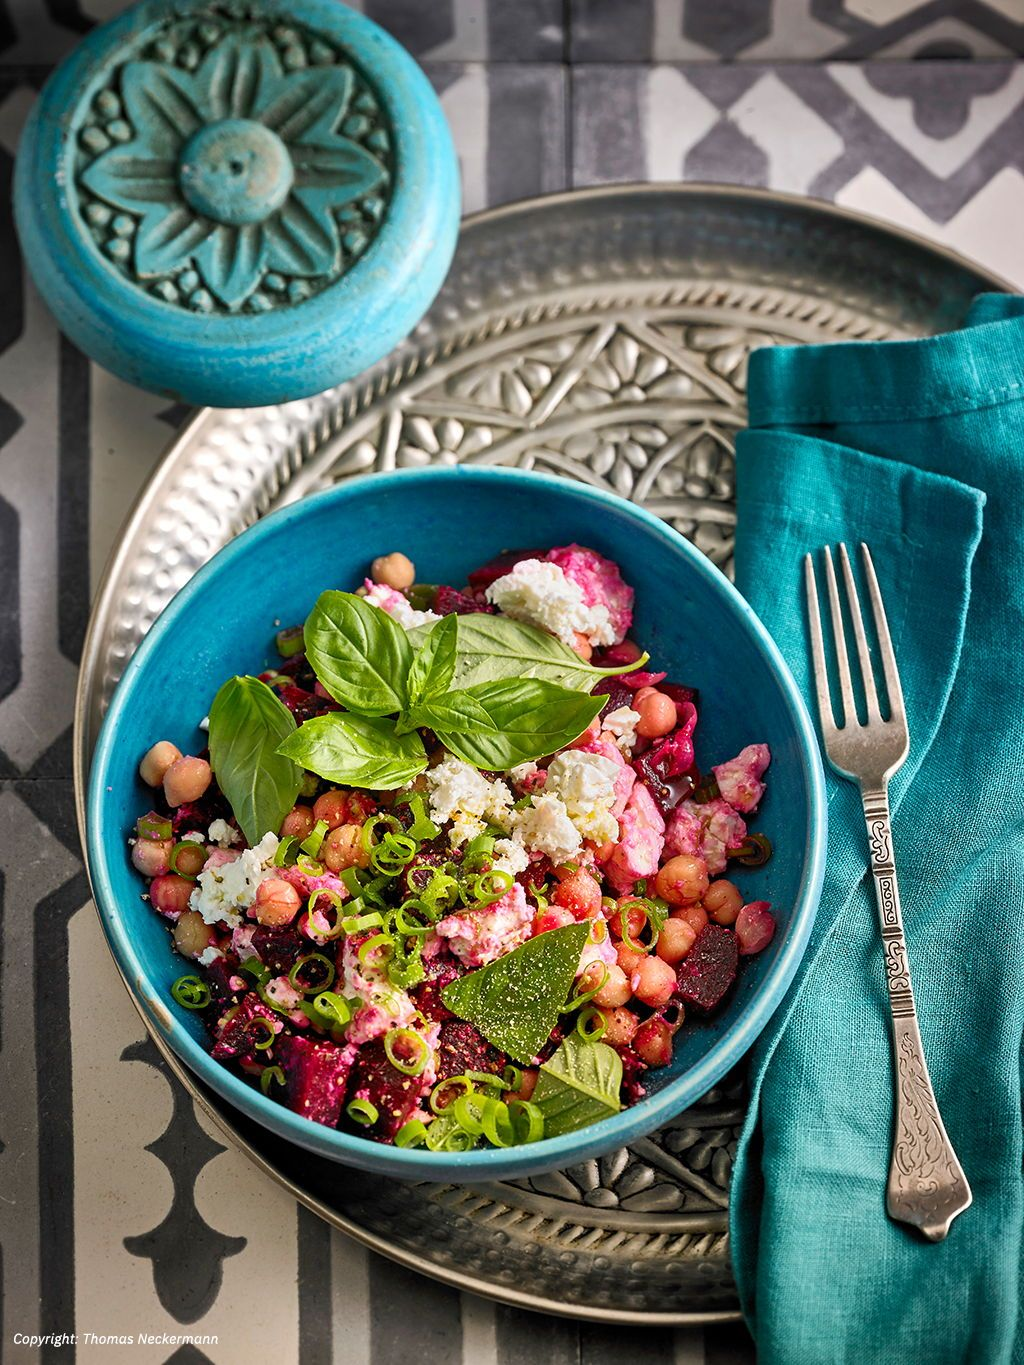 Photo of Beetroot Chickpea Salad from ickeausheidelberg | Chef